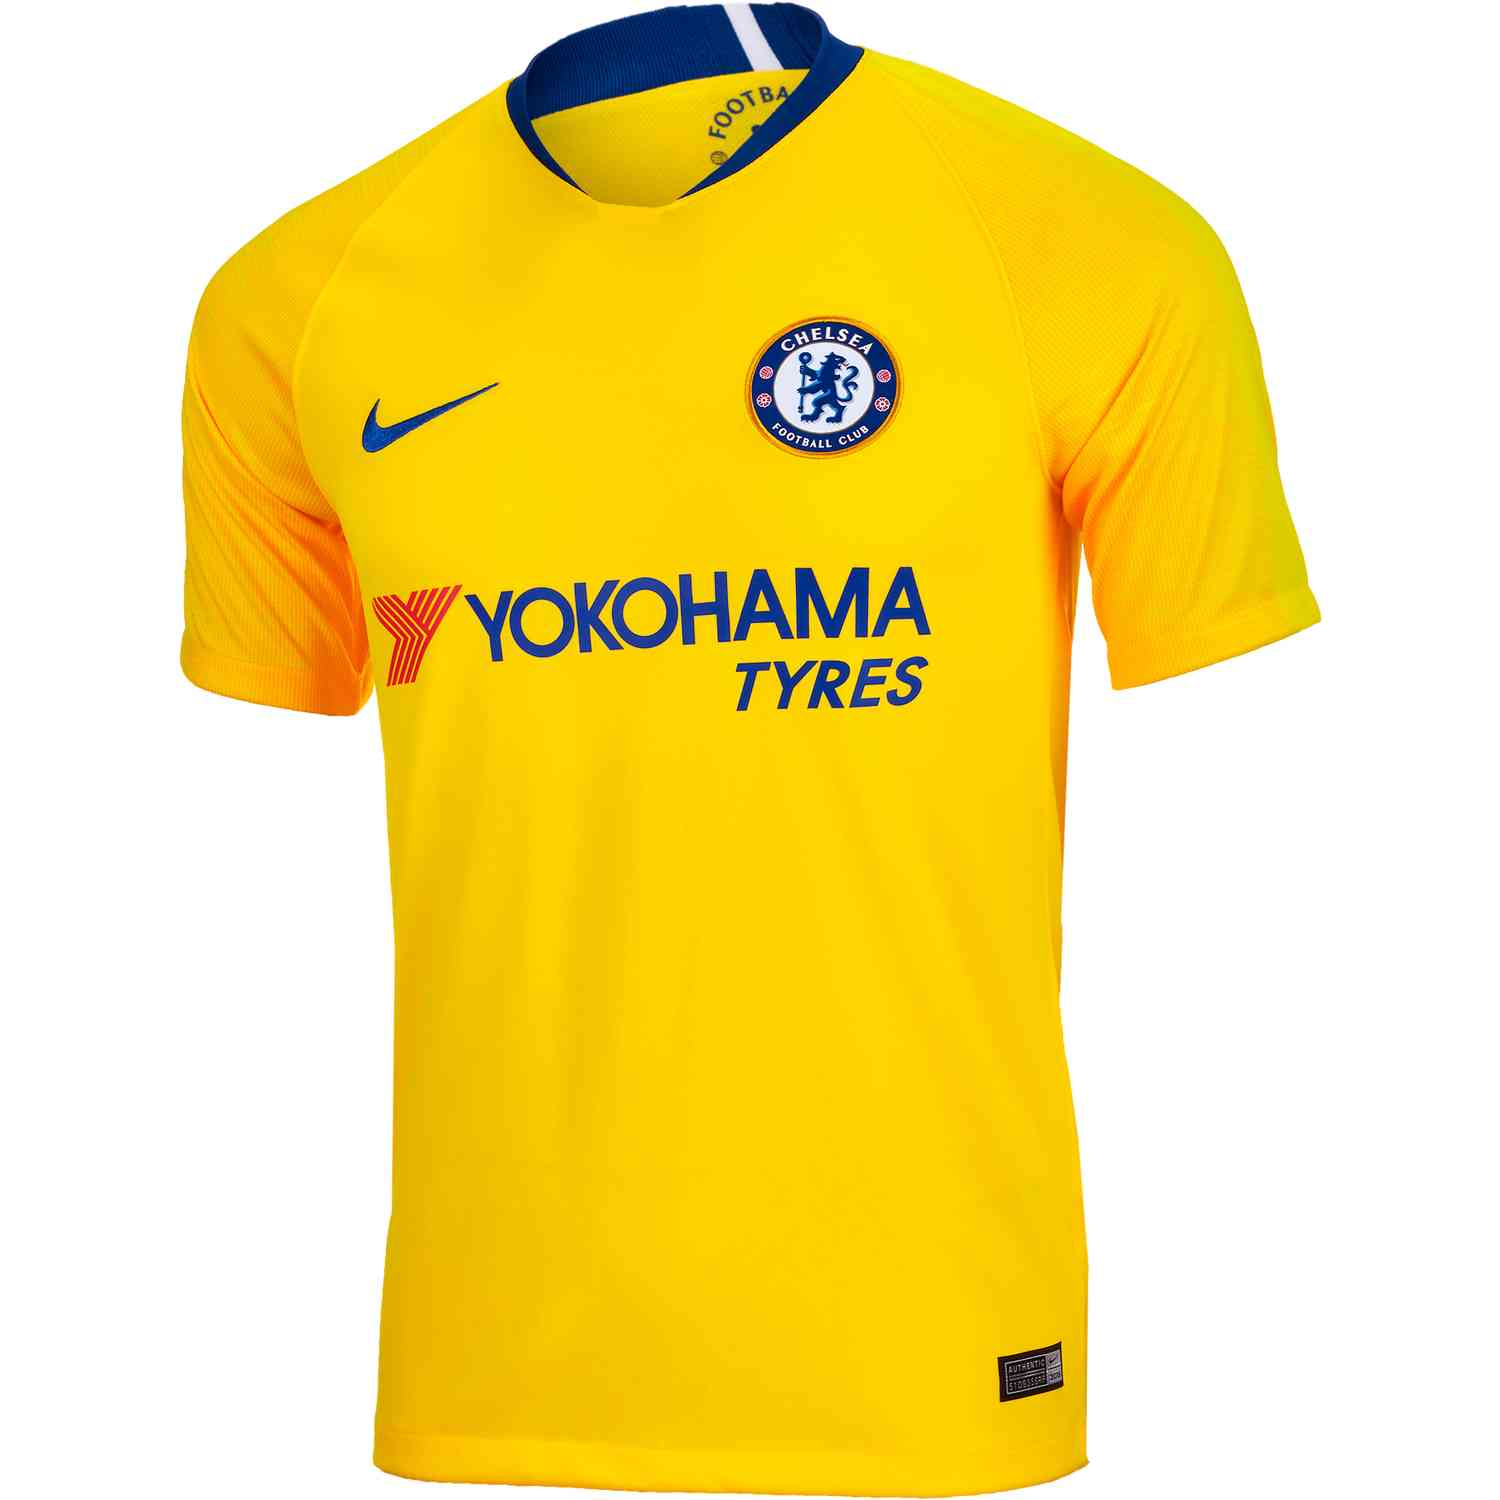 reputable site a24f0 4beb7 2018/19 Nike Chelsea Away Jersey